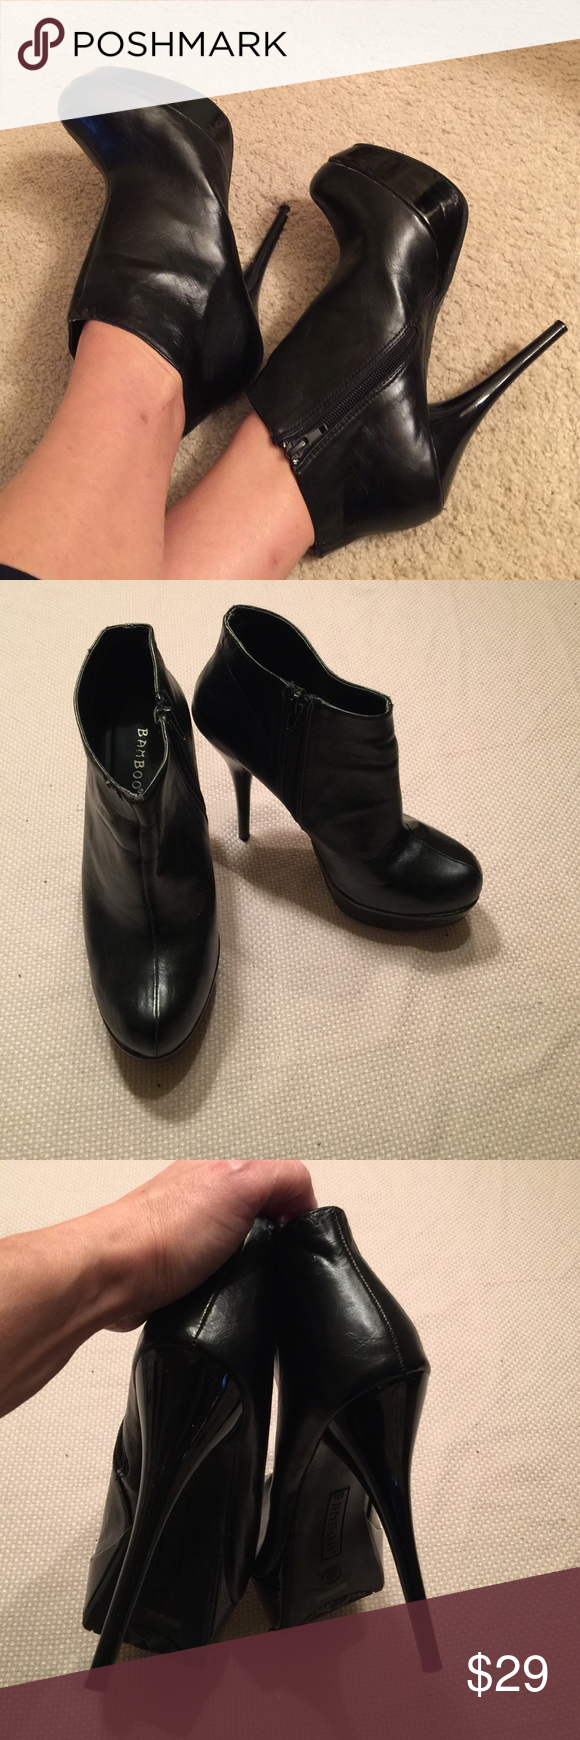 Very Sexy Black platform ankle boot Sexy black faux leather with glossy black Platform and heel ankle zip booties, worn one time size in excellent condition 7.5 Bamboo Shoes Ankle Boots & Booties